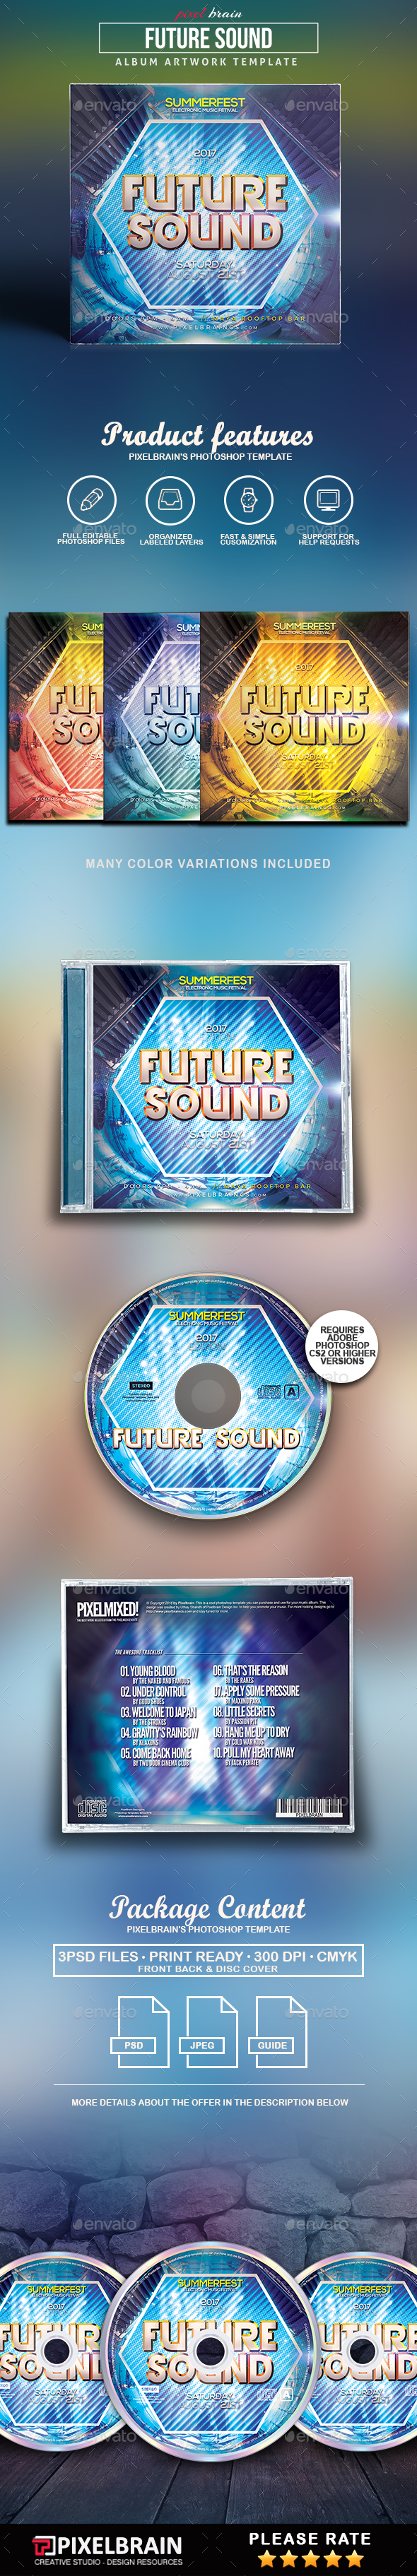 Future Sounds CD Cover Artwork - CD & DVD Artwork Print Templates